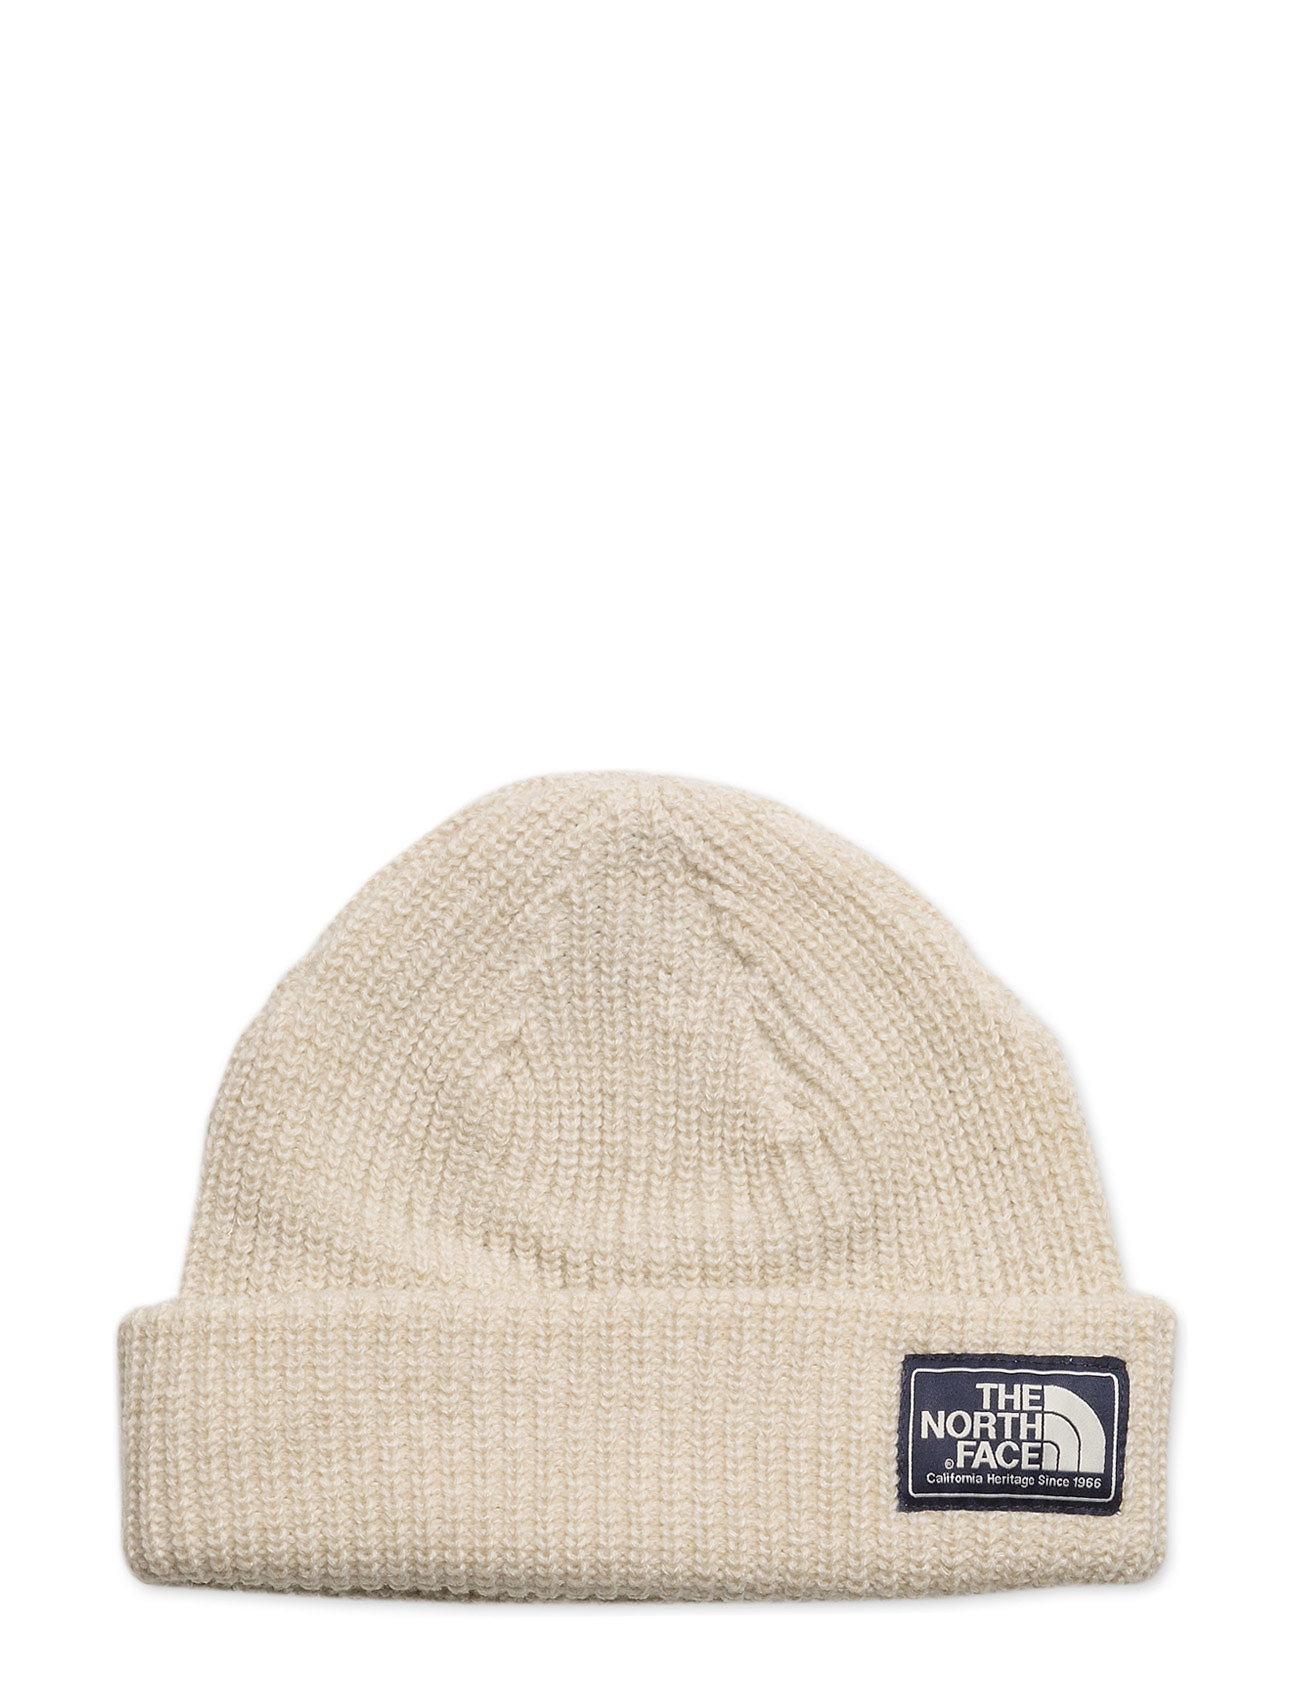 the north face – Salty dog beanie på boozt.com dk